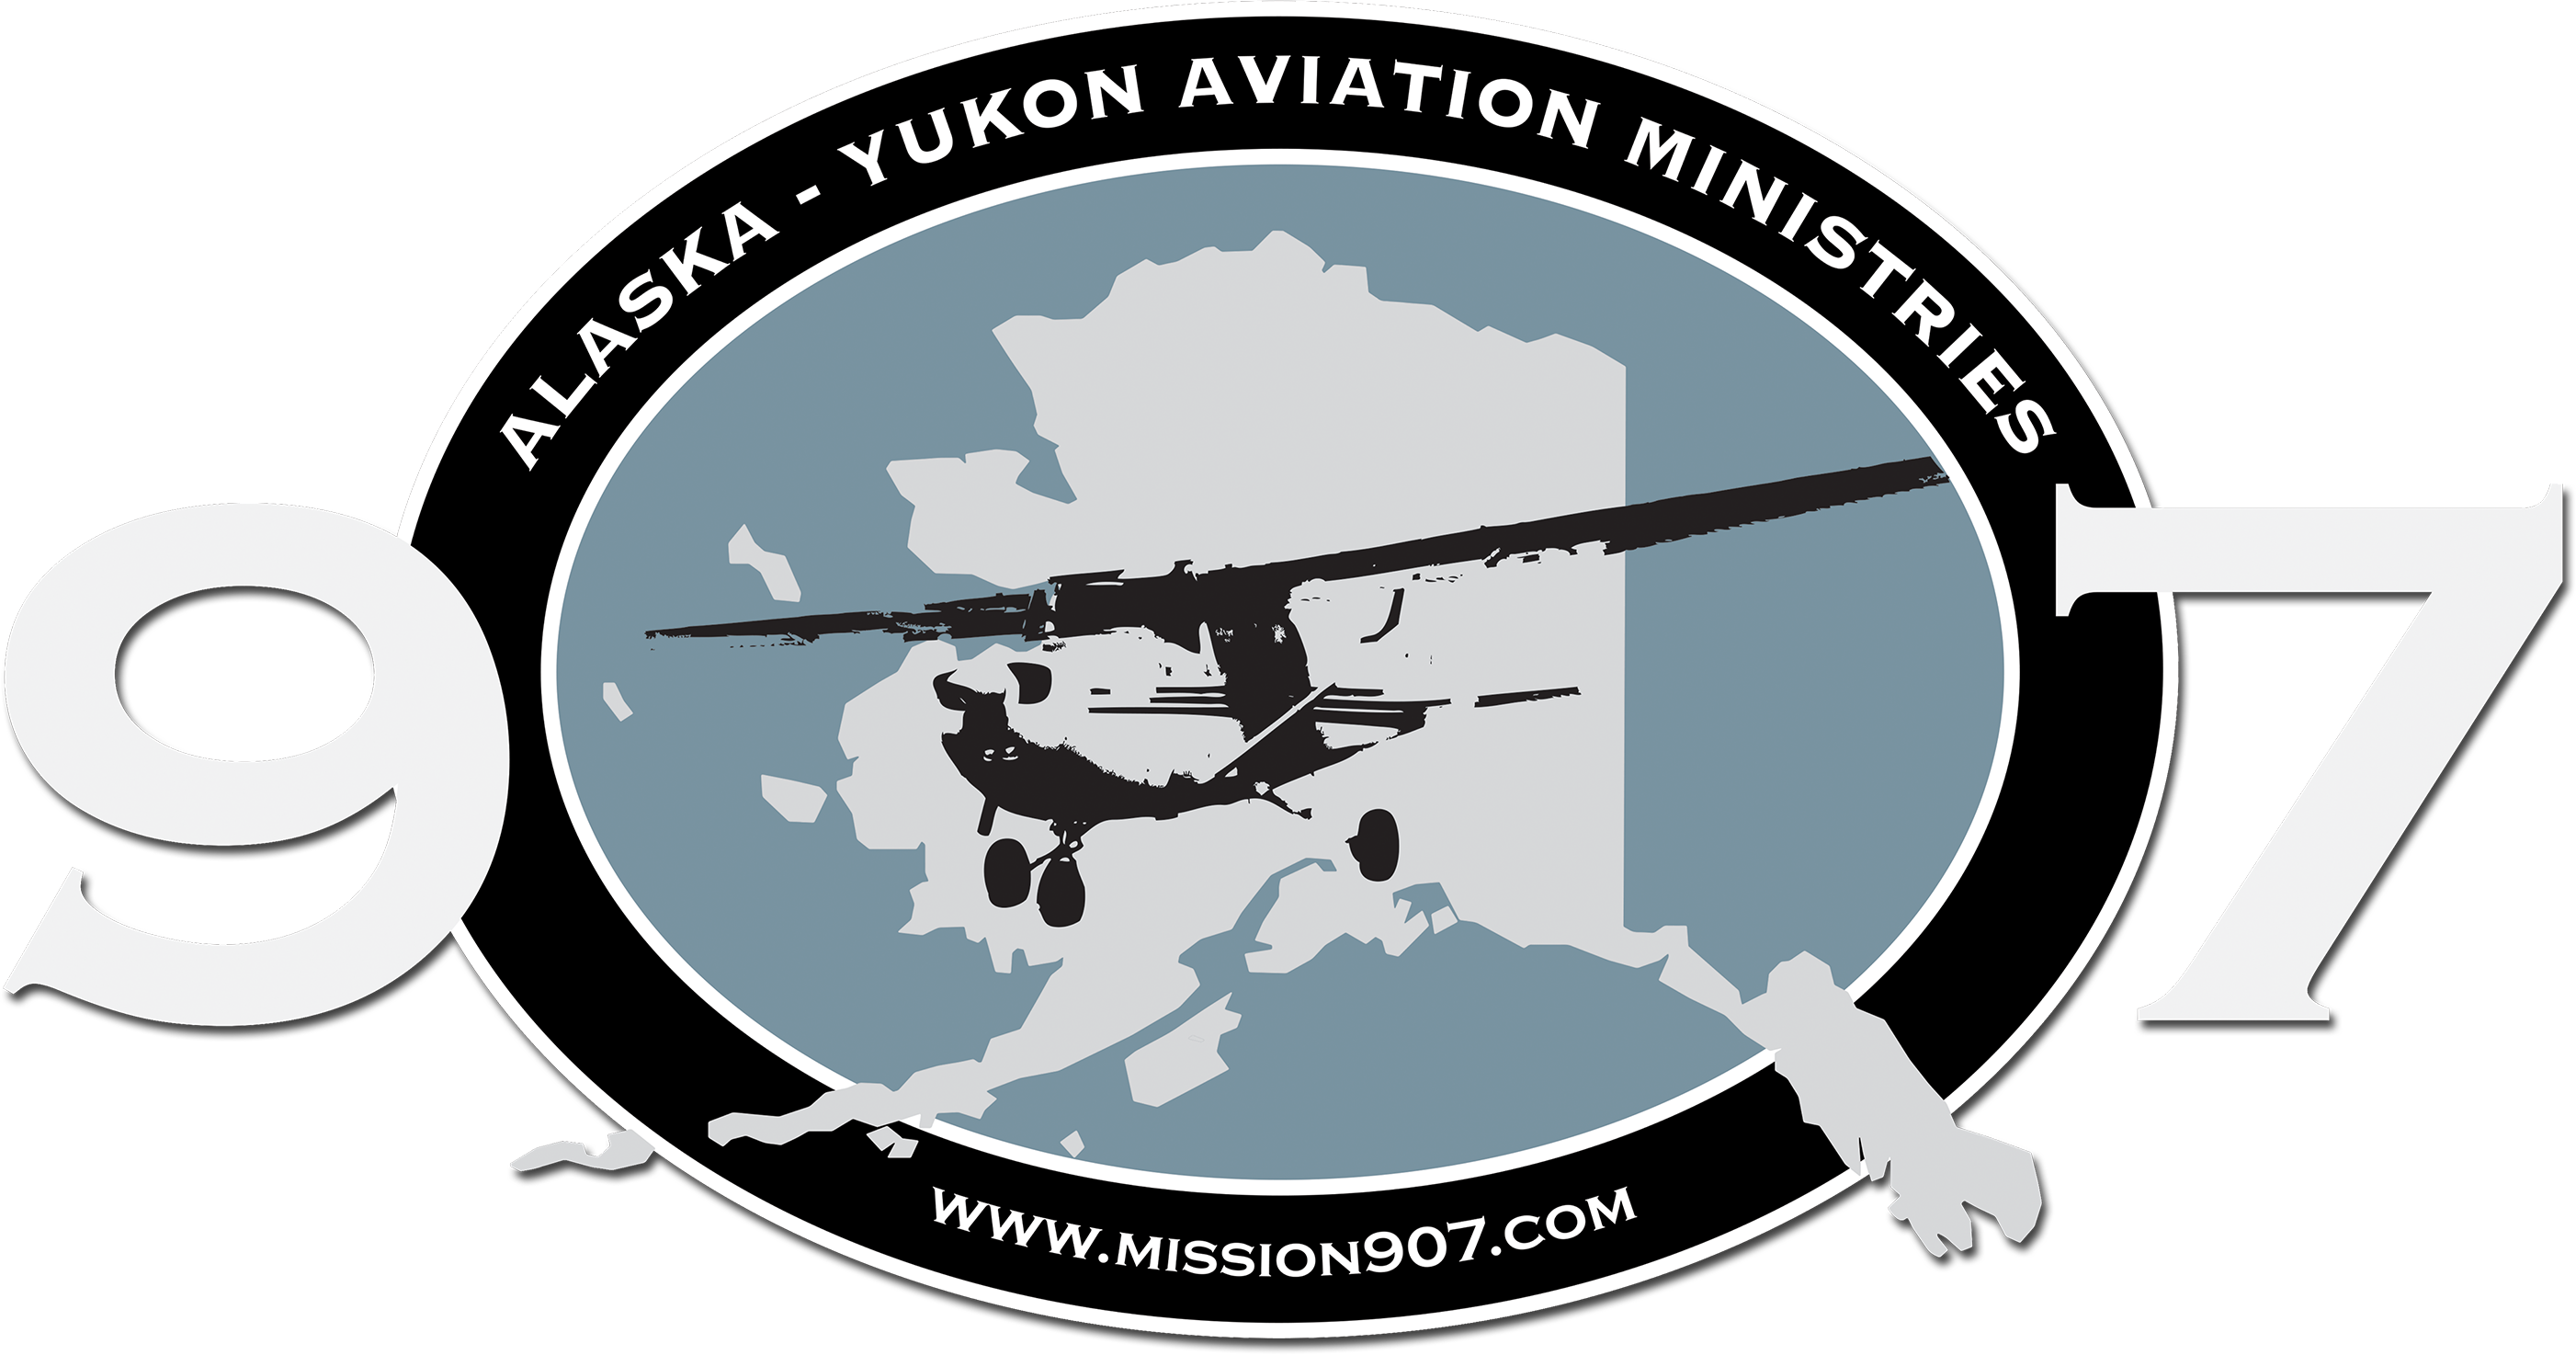 ALASKA-YUKON FLYING MISSIONS